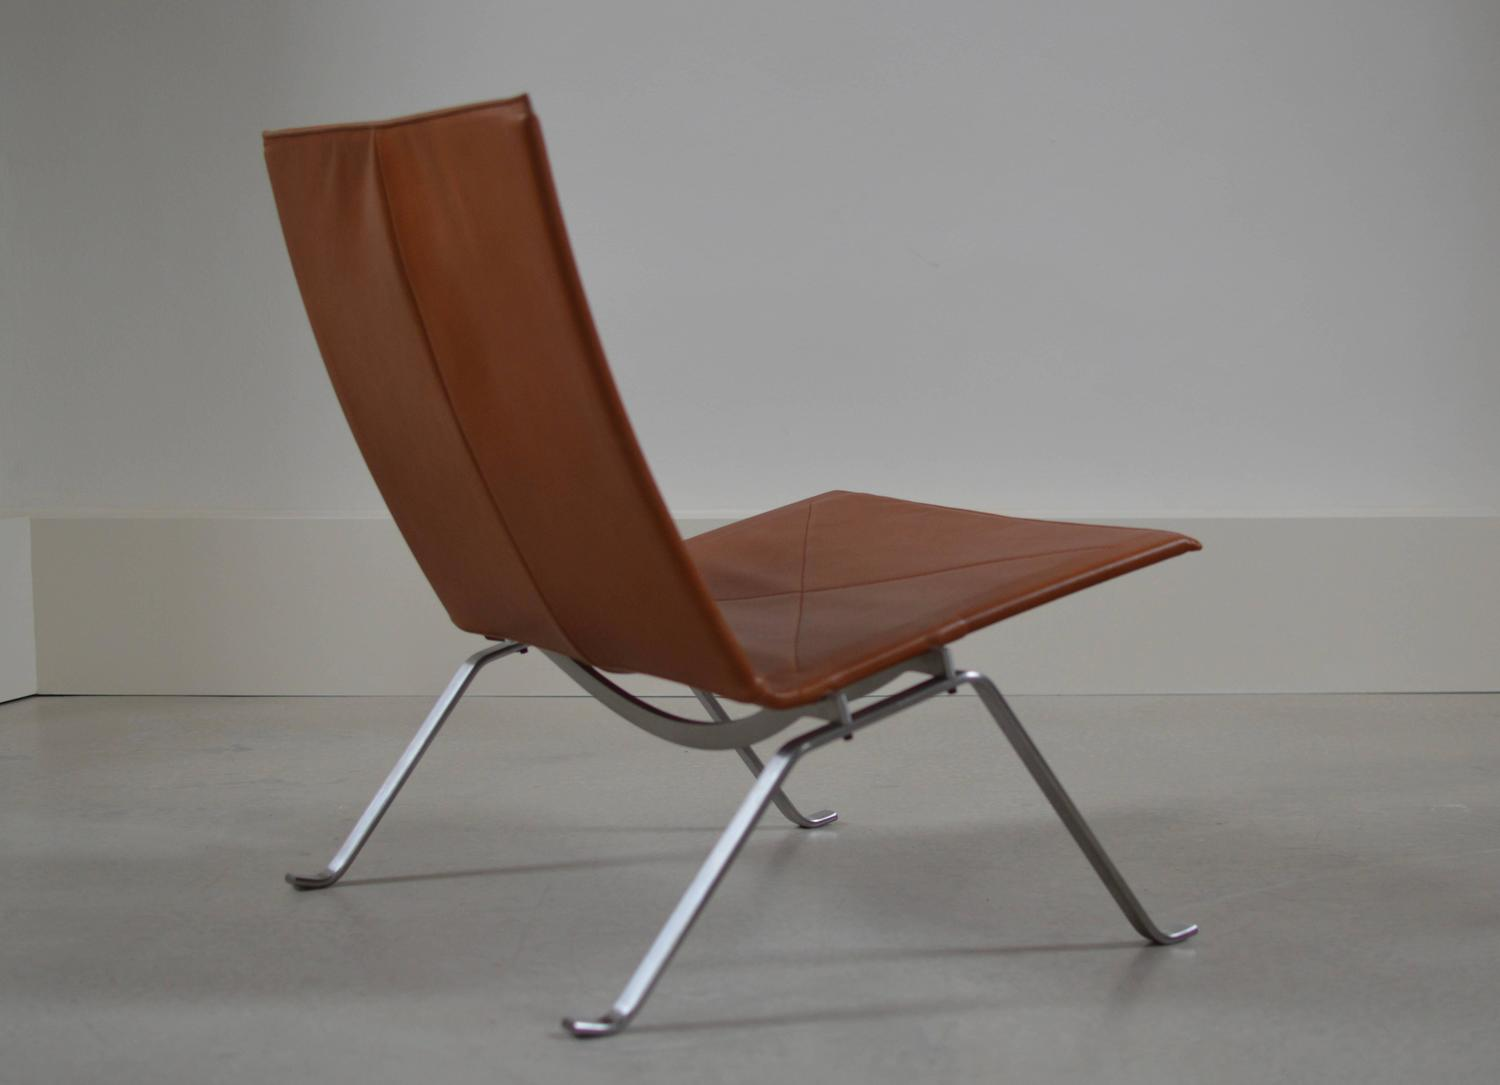 poul kjaerholm walnut pk22 lounge chair fritz hansen for sale at 1stdibs. Black Bedroom Furniture Sets. Home Design Ideas